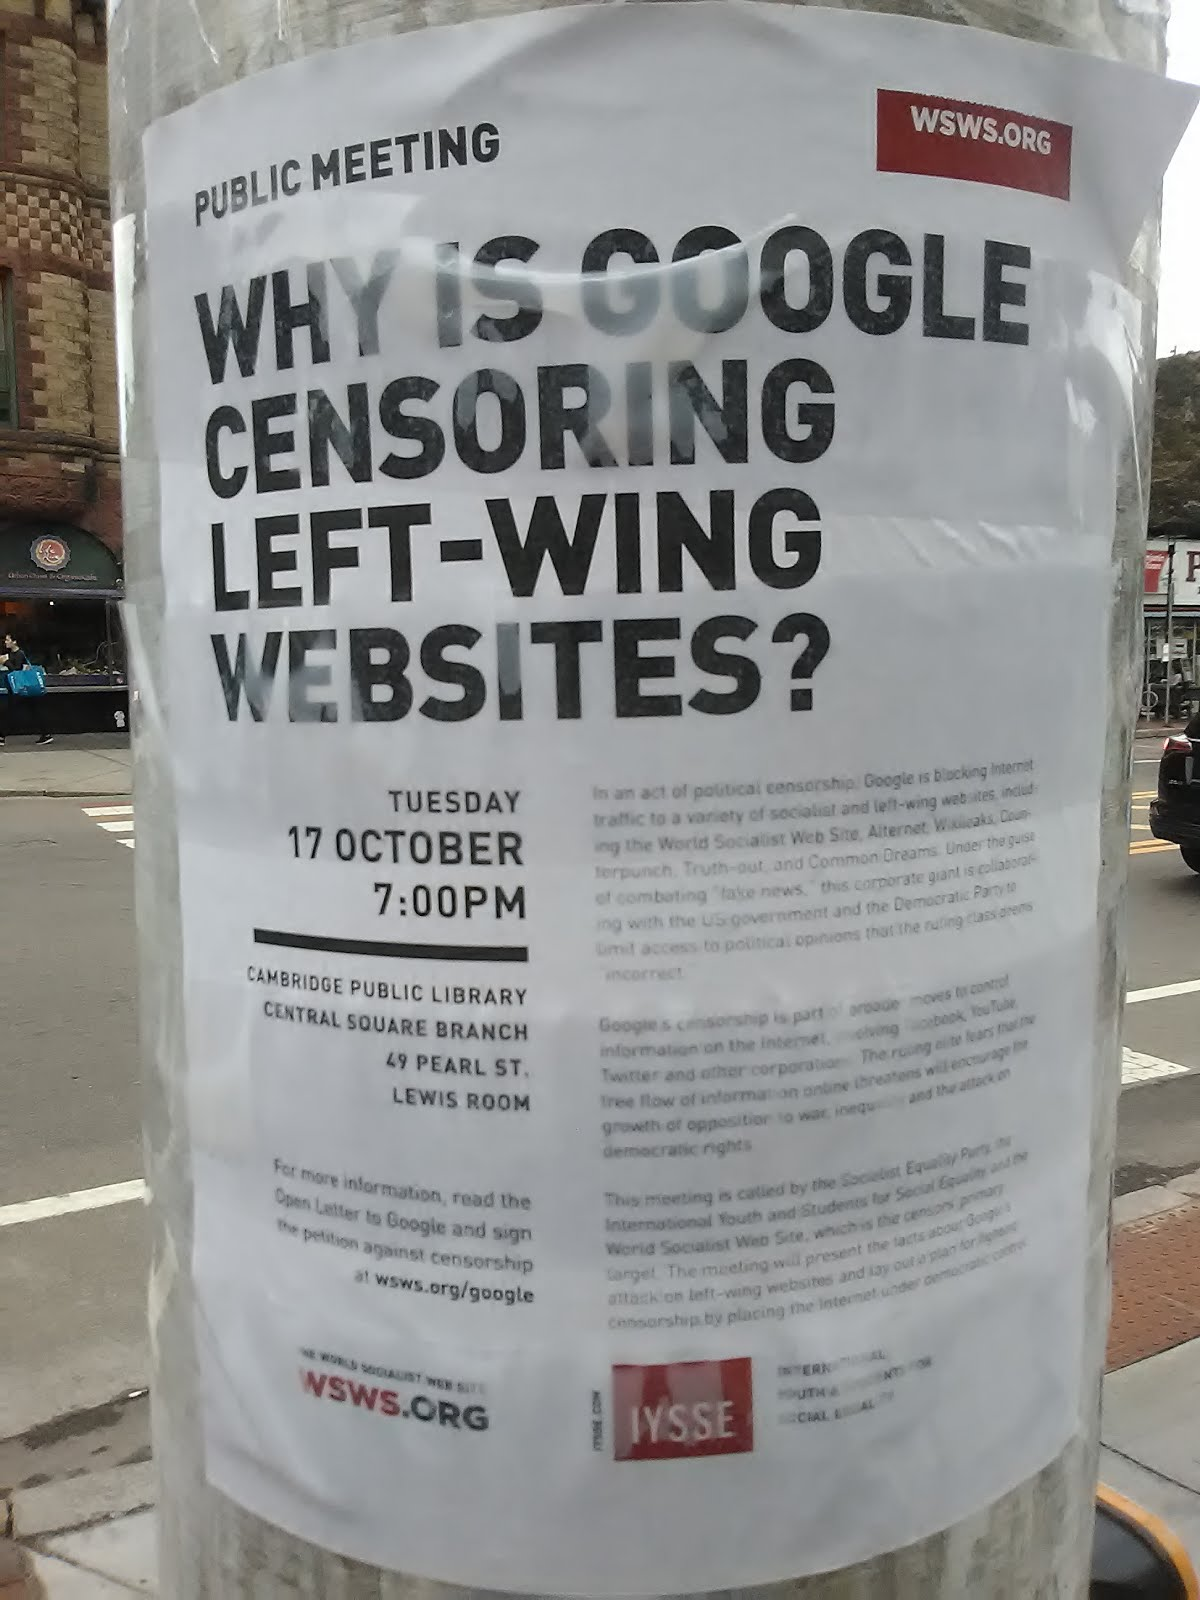 Public Meeting 10-17 Cambridge MA Censorship